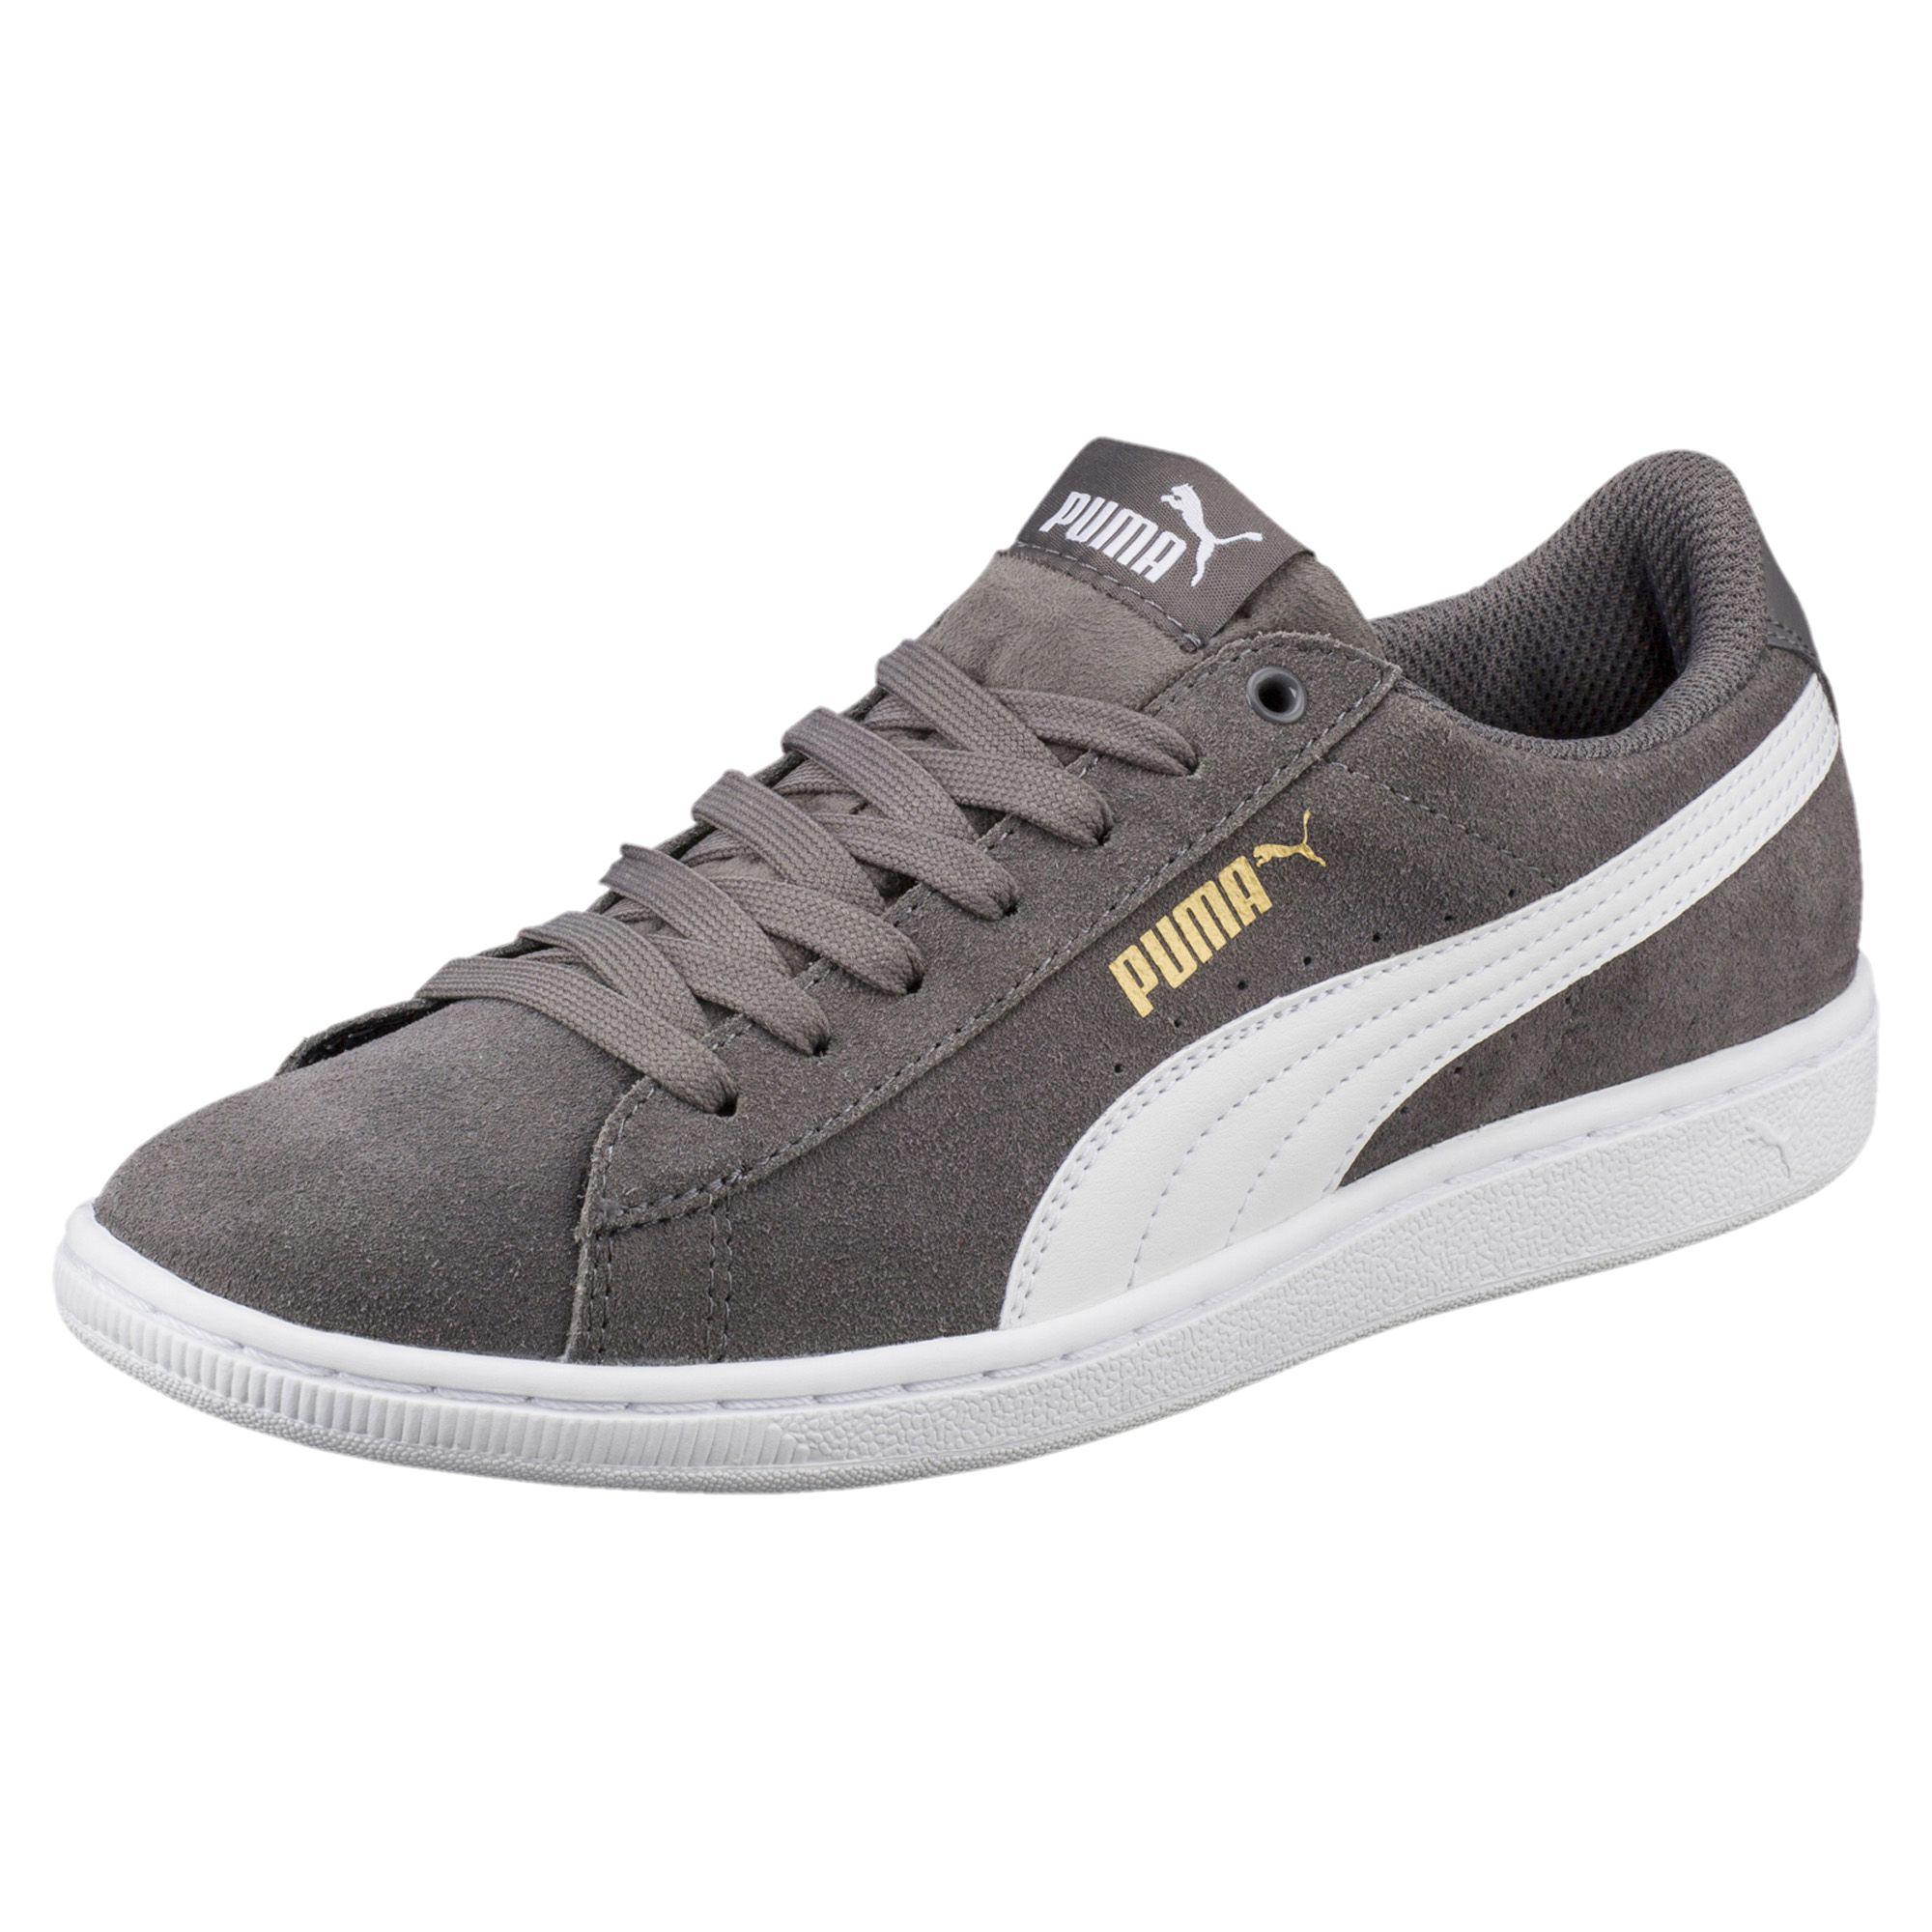 PUMA - Gray Vikky Softfoam Women s Sneakers - Lyst. View fullscreen 8d3287474